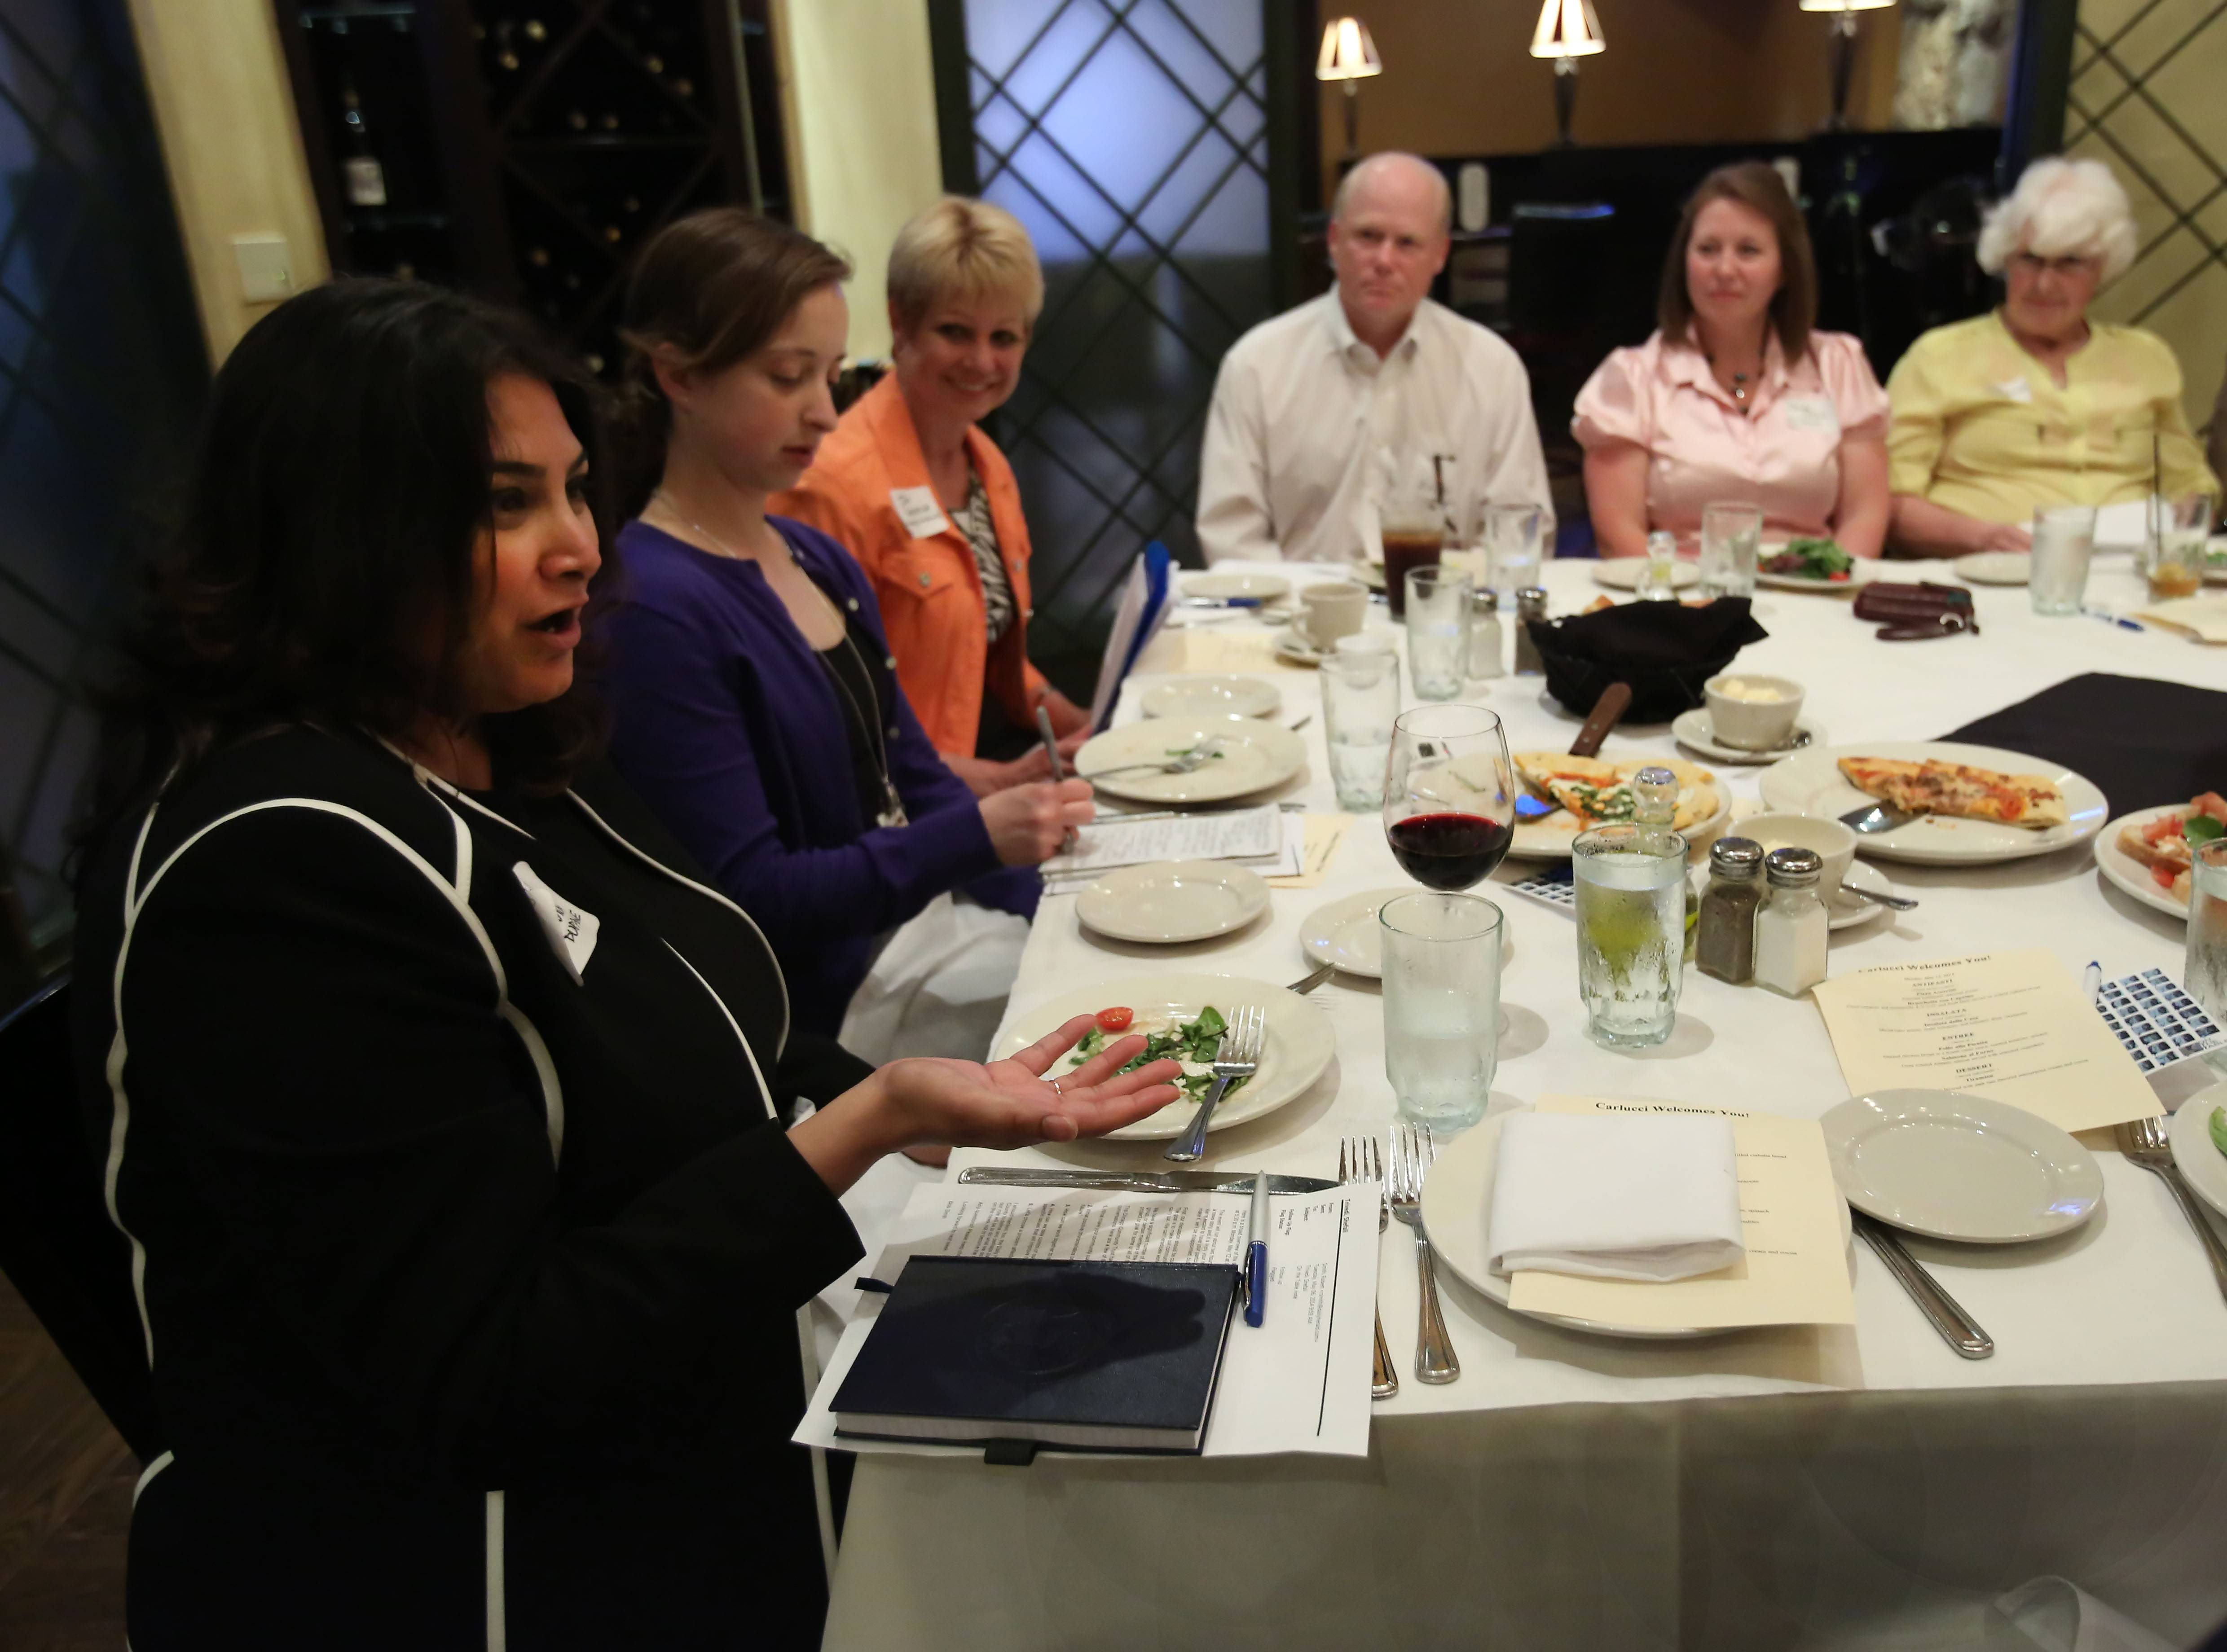 Shefali Trivedi, executive director of Giving DuPage, describes how her organization can serve to connect other volunteer and charitable efforts in the county during an On the Table discussion Monday in Downers Grove.